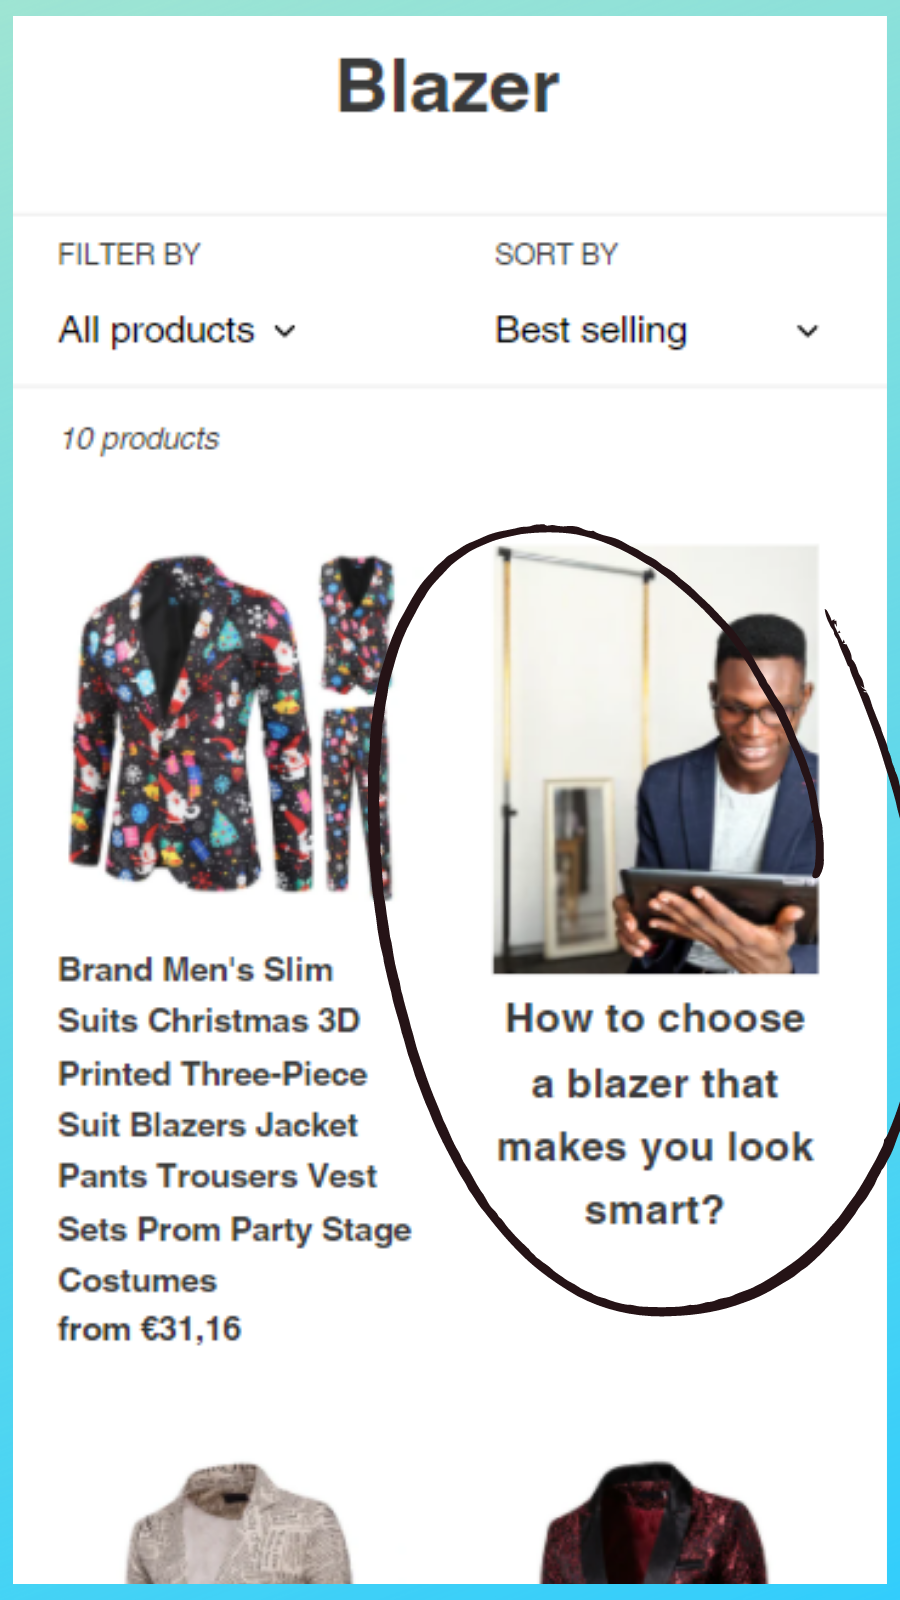 Blog articles in collection with image, mobile version example 1